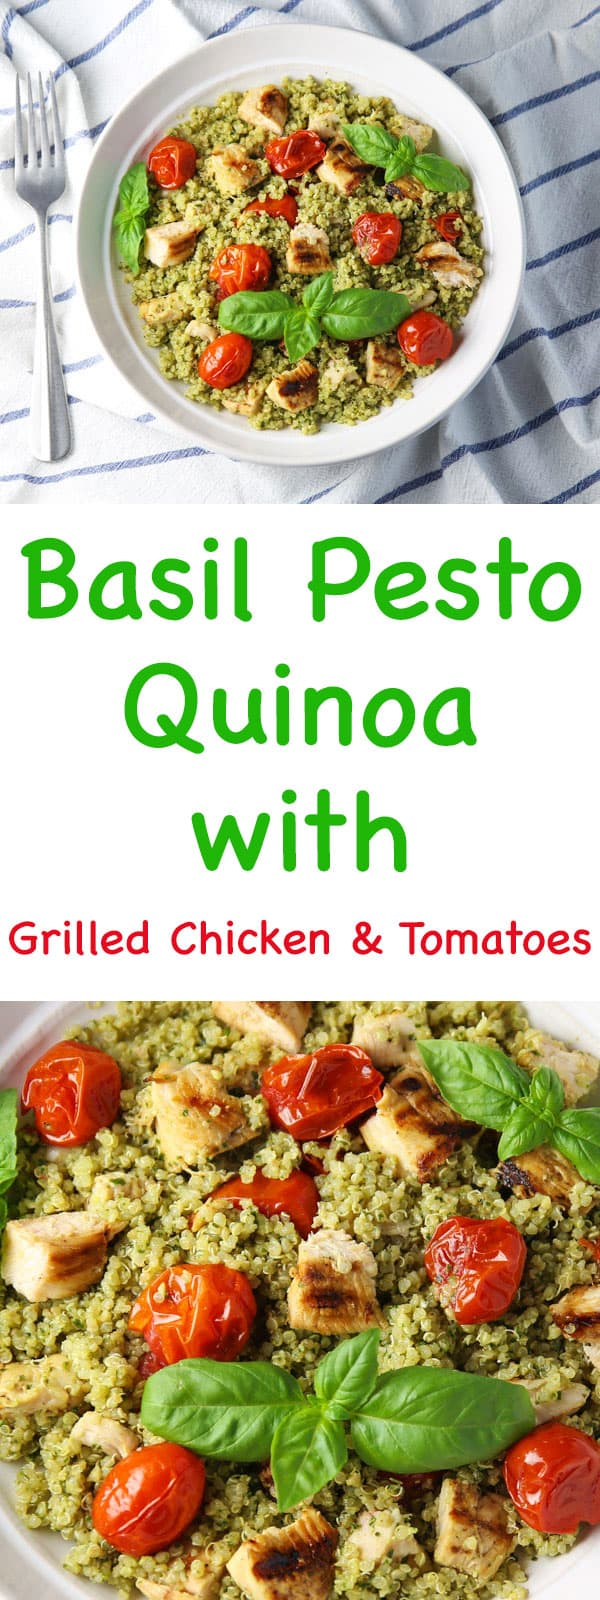 This Basil Pesto Quinoa with Grilled Chicken and Tomatoes is easy to make, healthy, and full of flavor! You can serve this warm or cold, so it's perfect for any time of year!